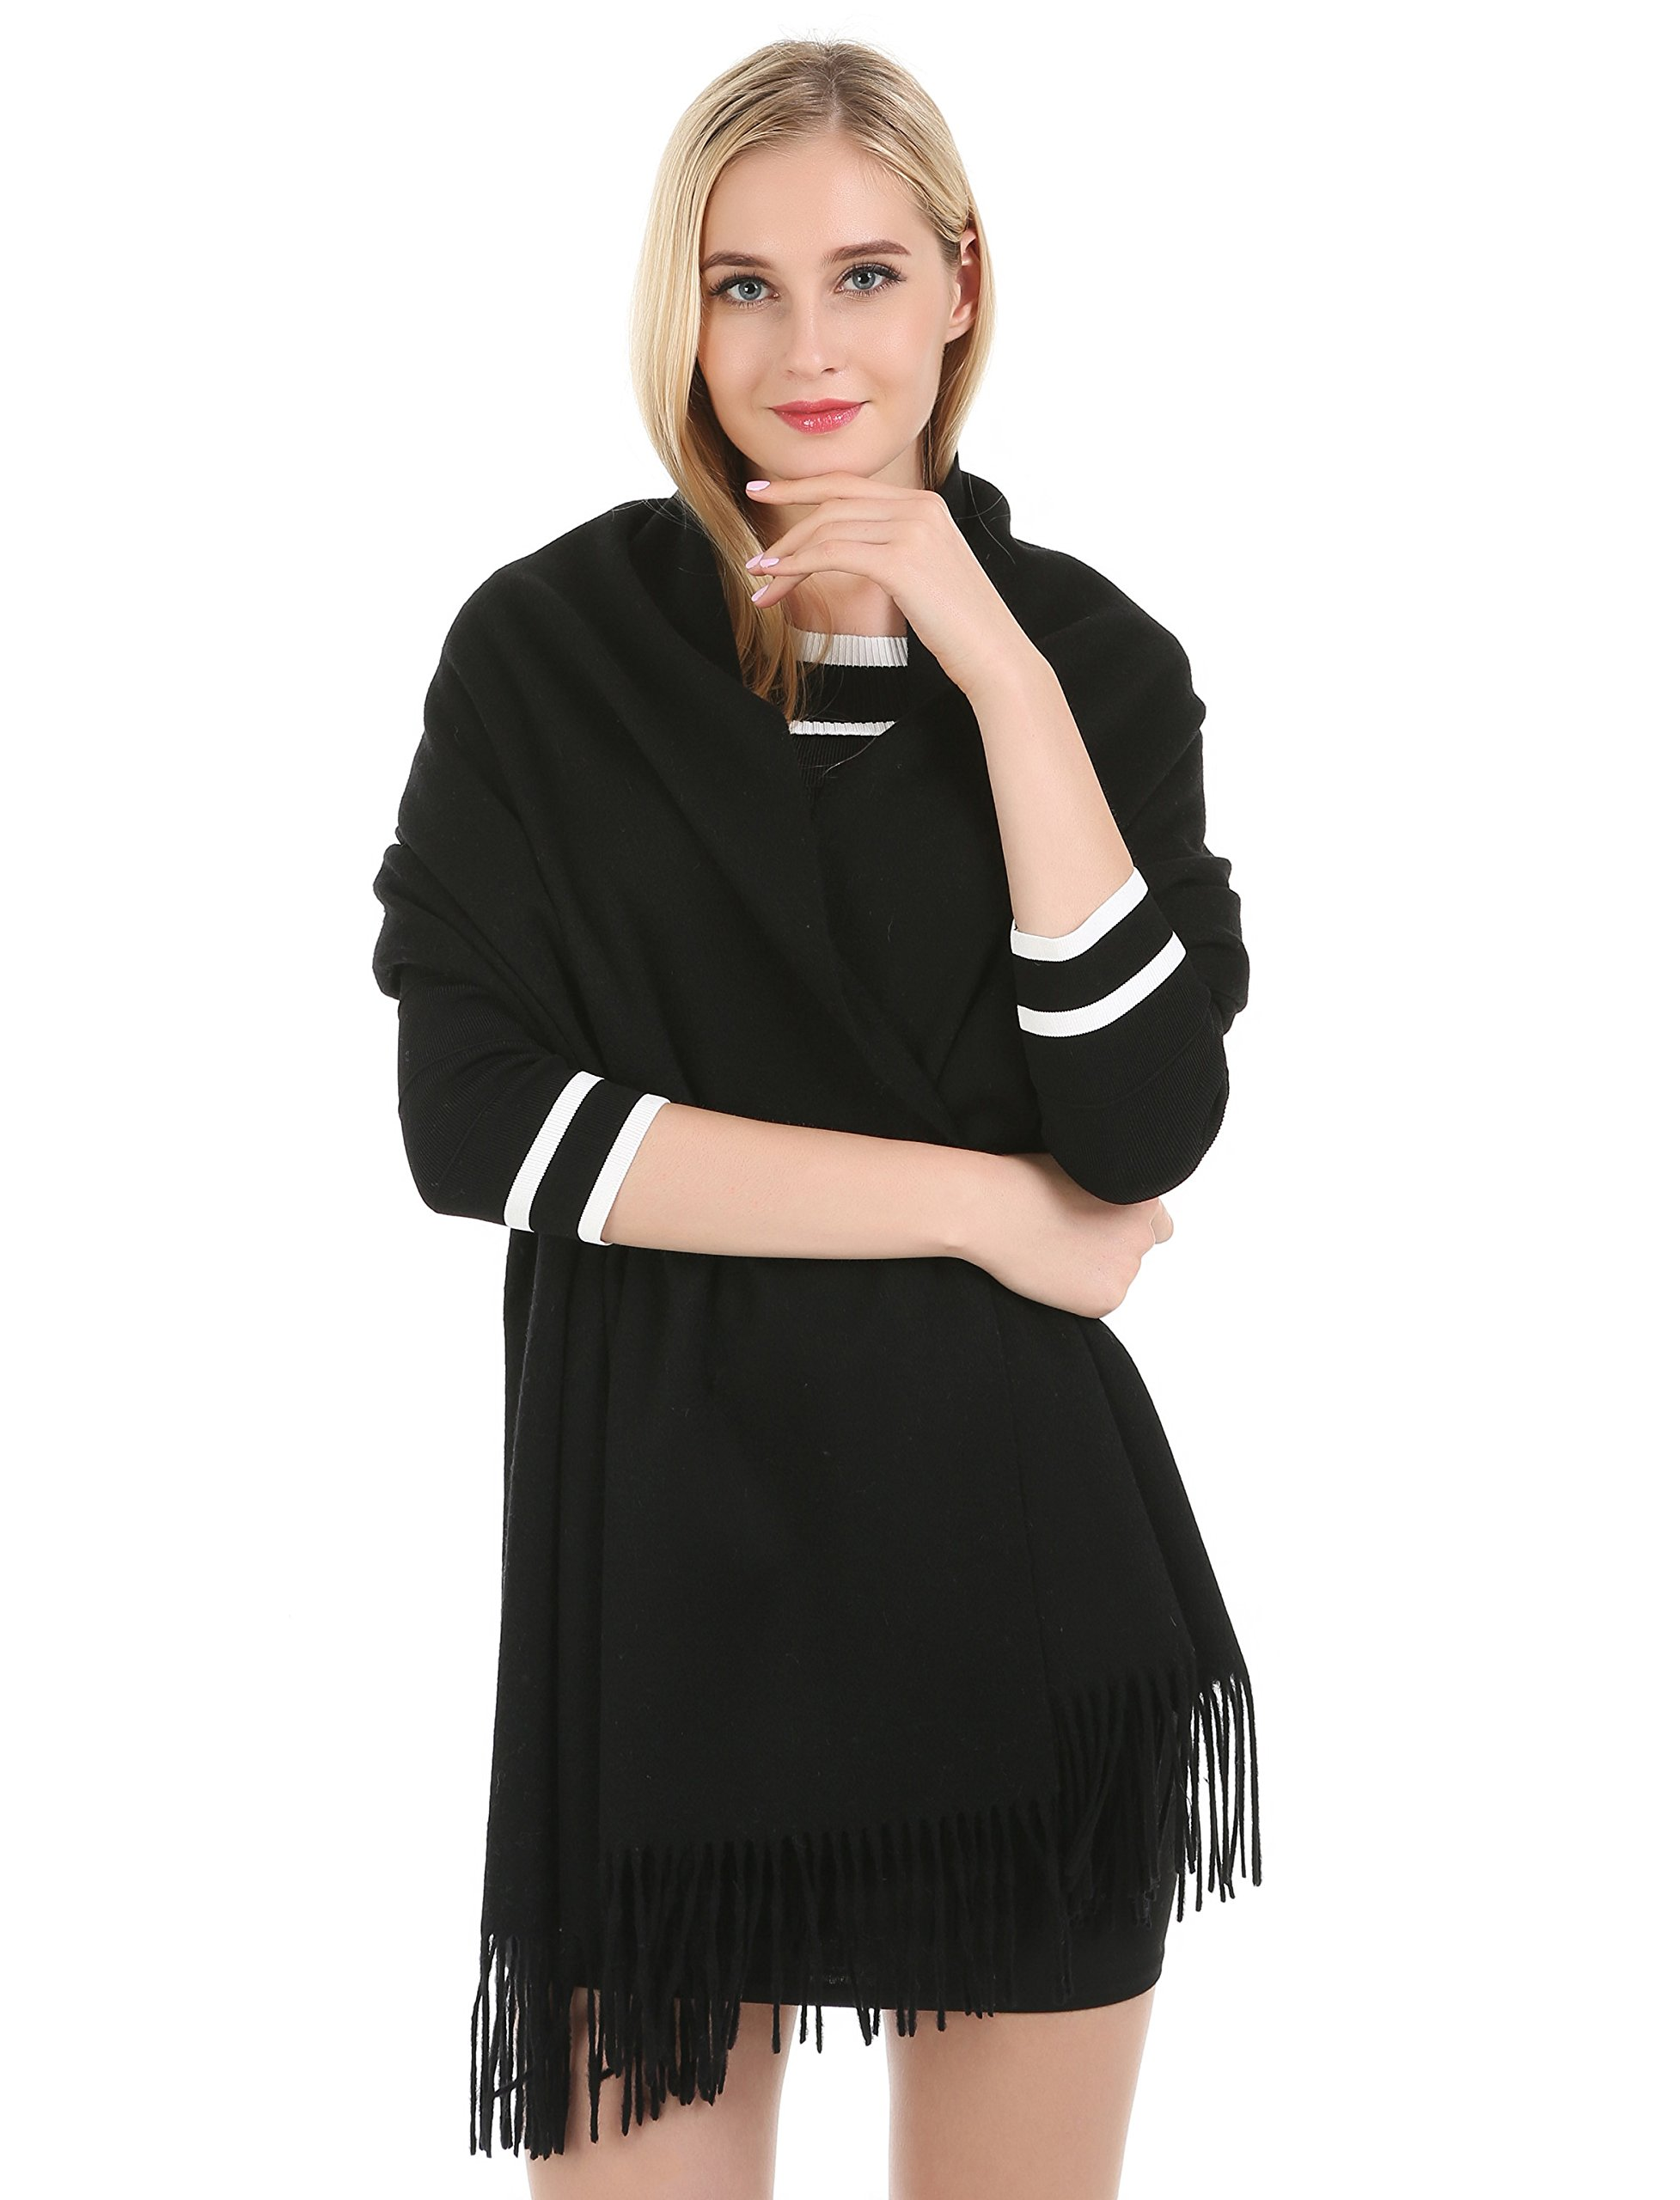 Saferin Extra Large 78'' X 28'' Women and Men Thick Solid Cashmere Pashmina Wrap Shawl Scarf with Gift Box(1.black) by SAFERIN (Image #2)